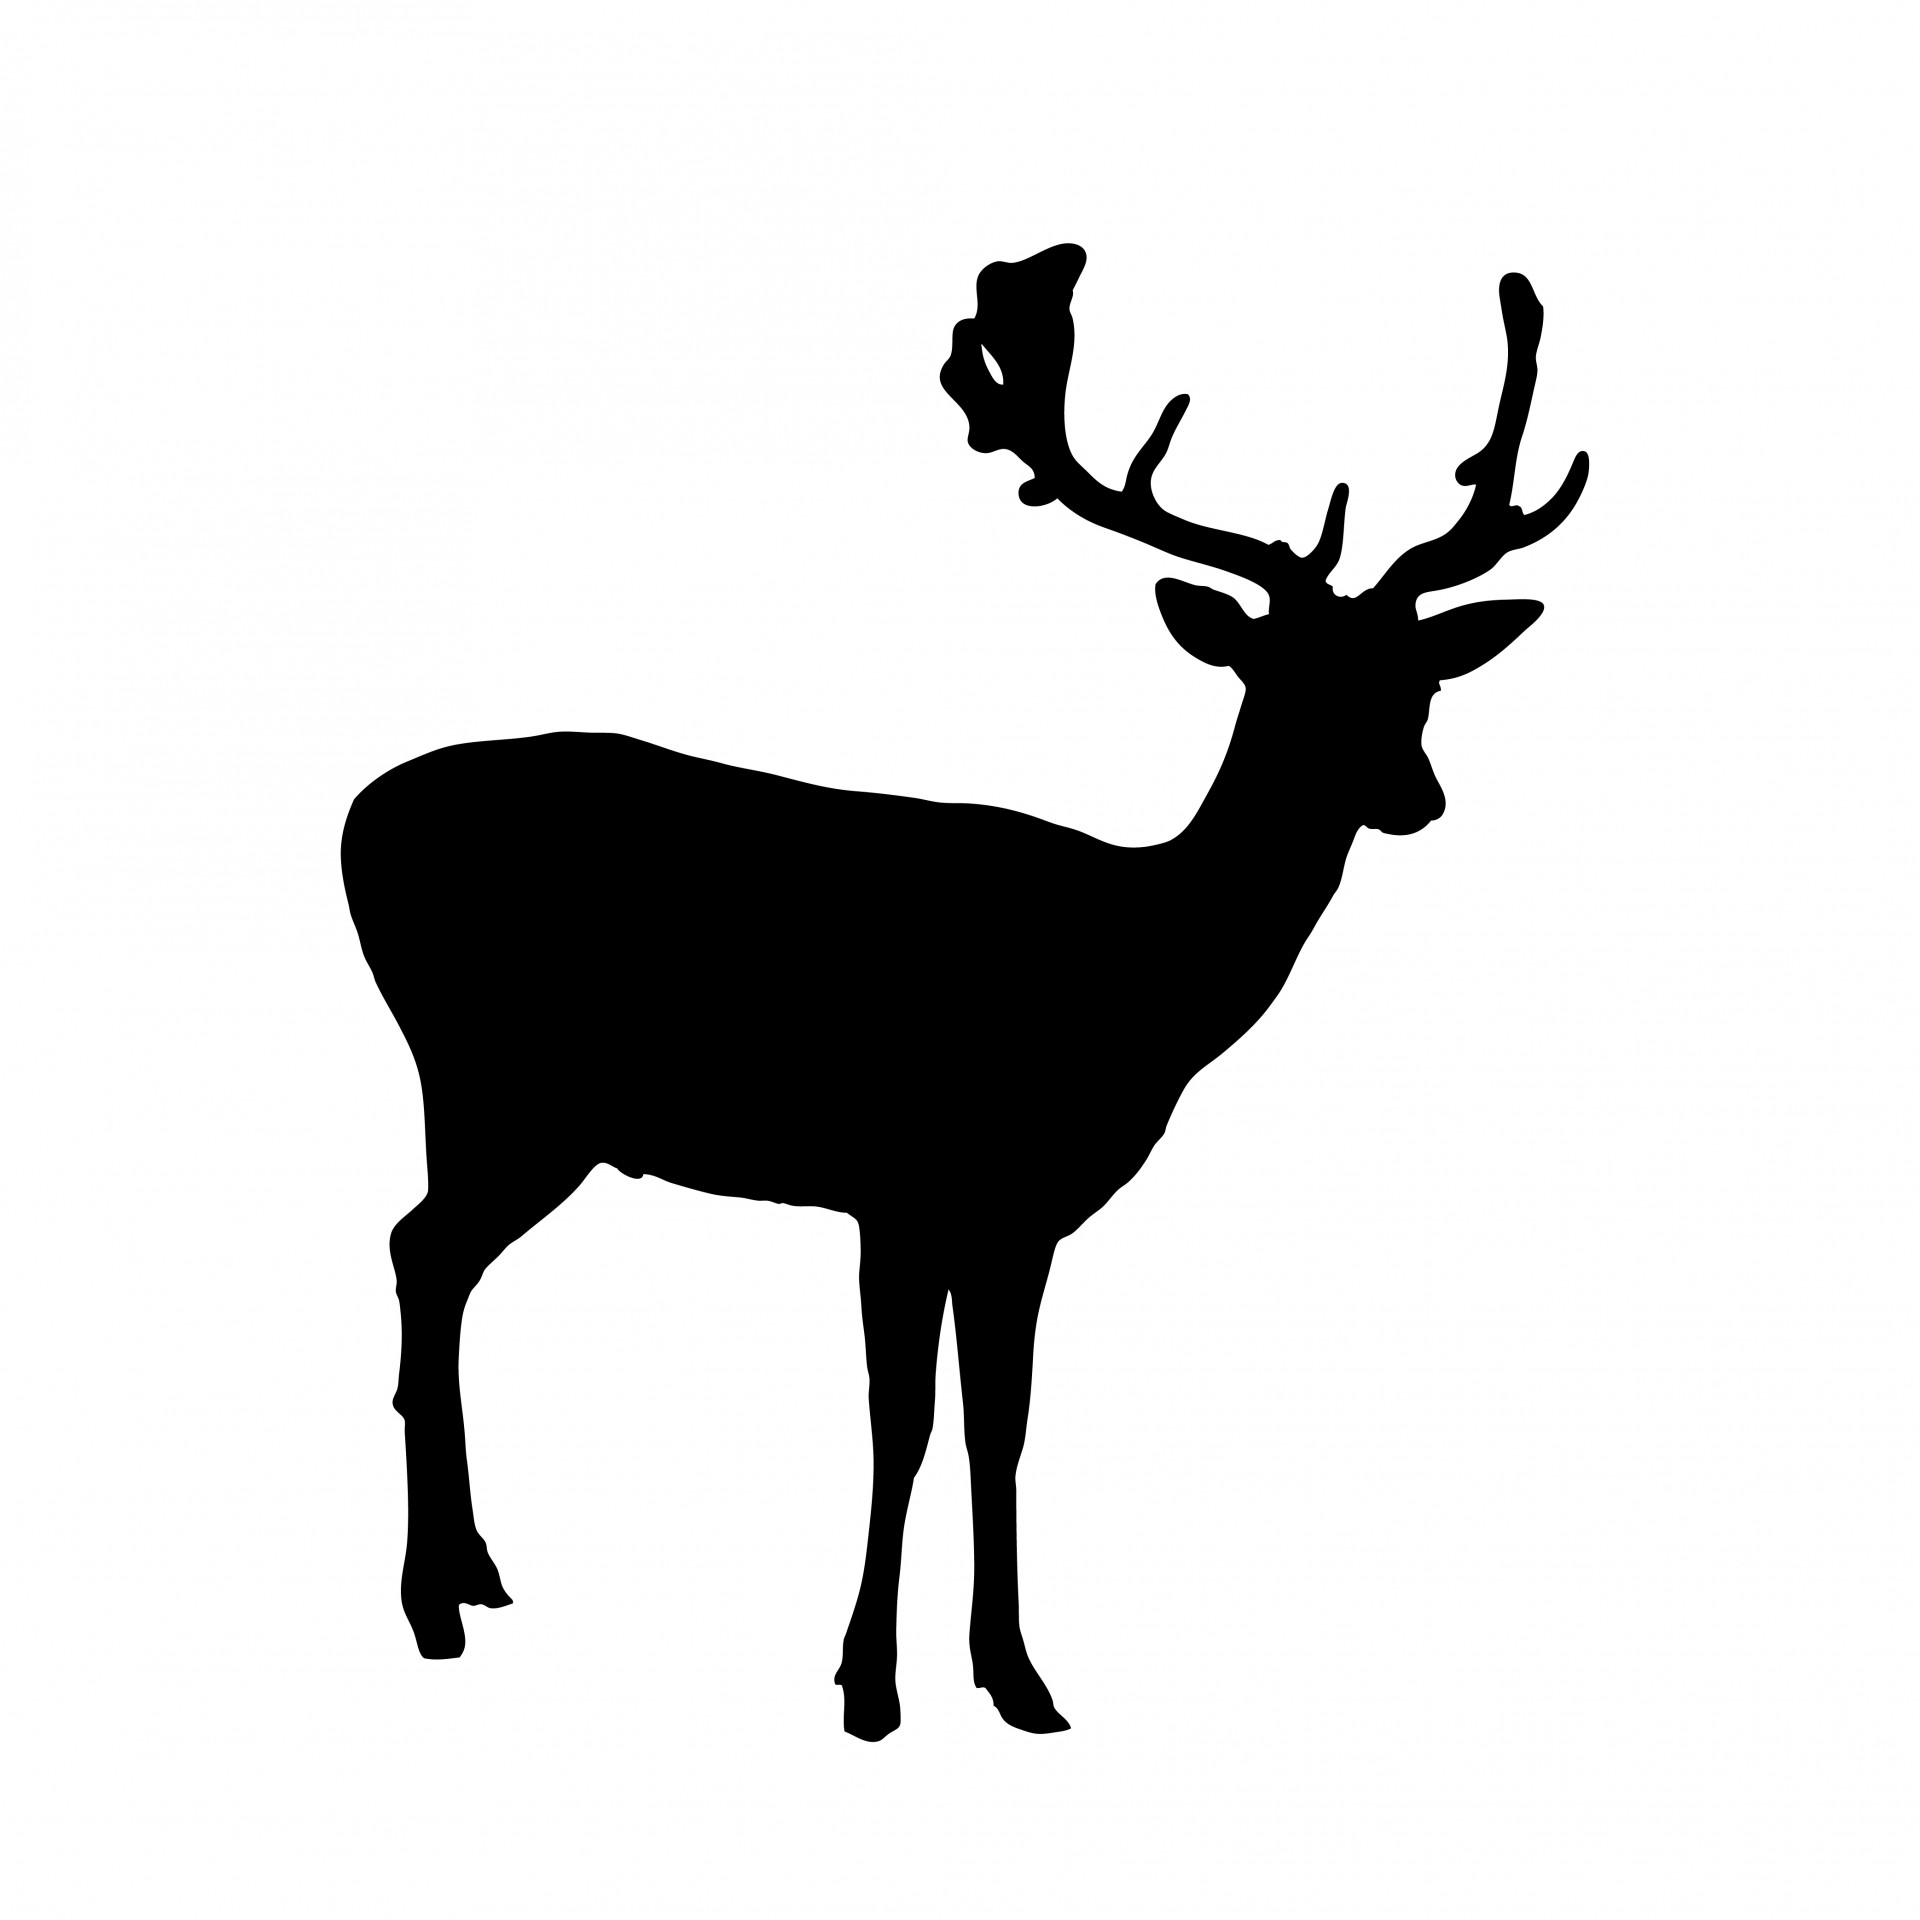 1920x1920 List Of Synonyms And Antonyms Of The Word Deer Silouette